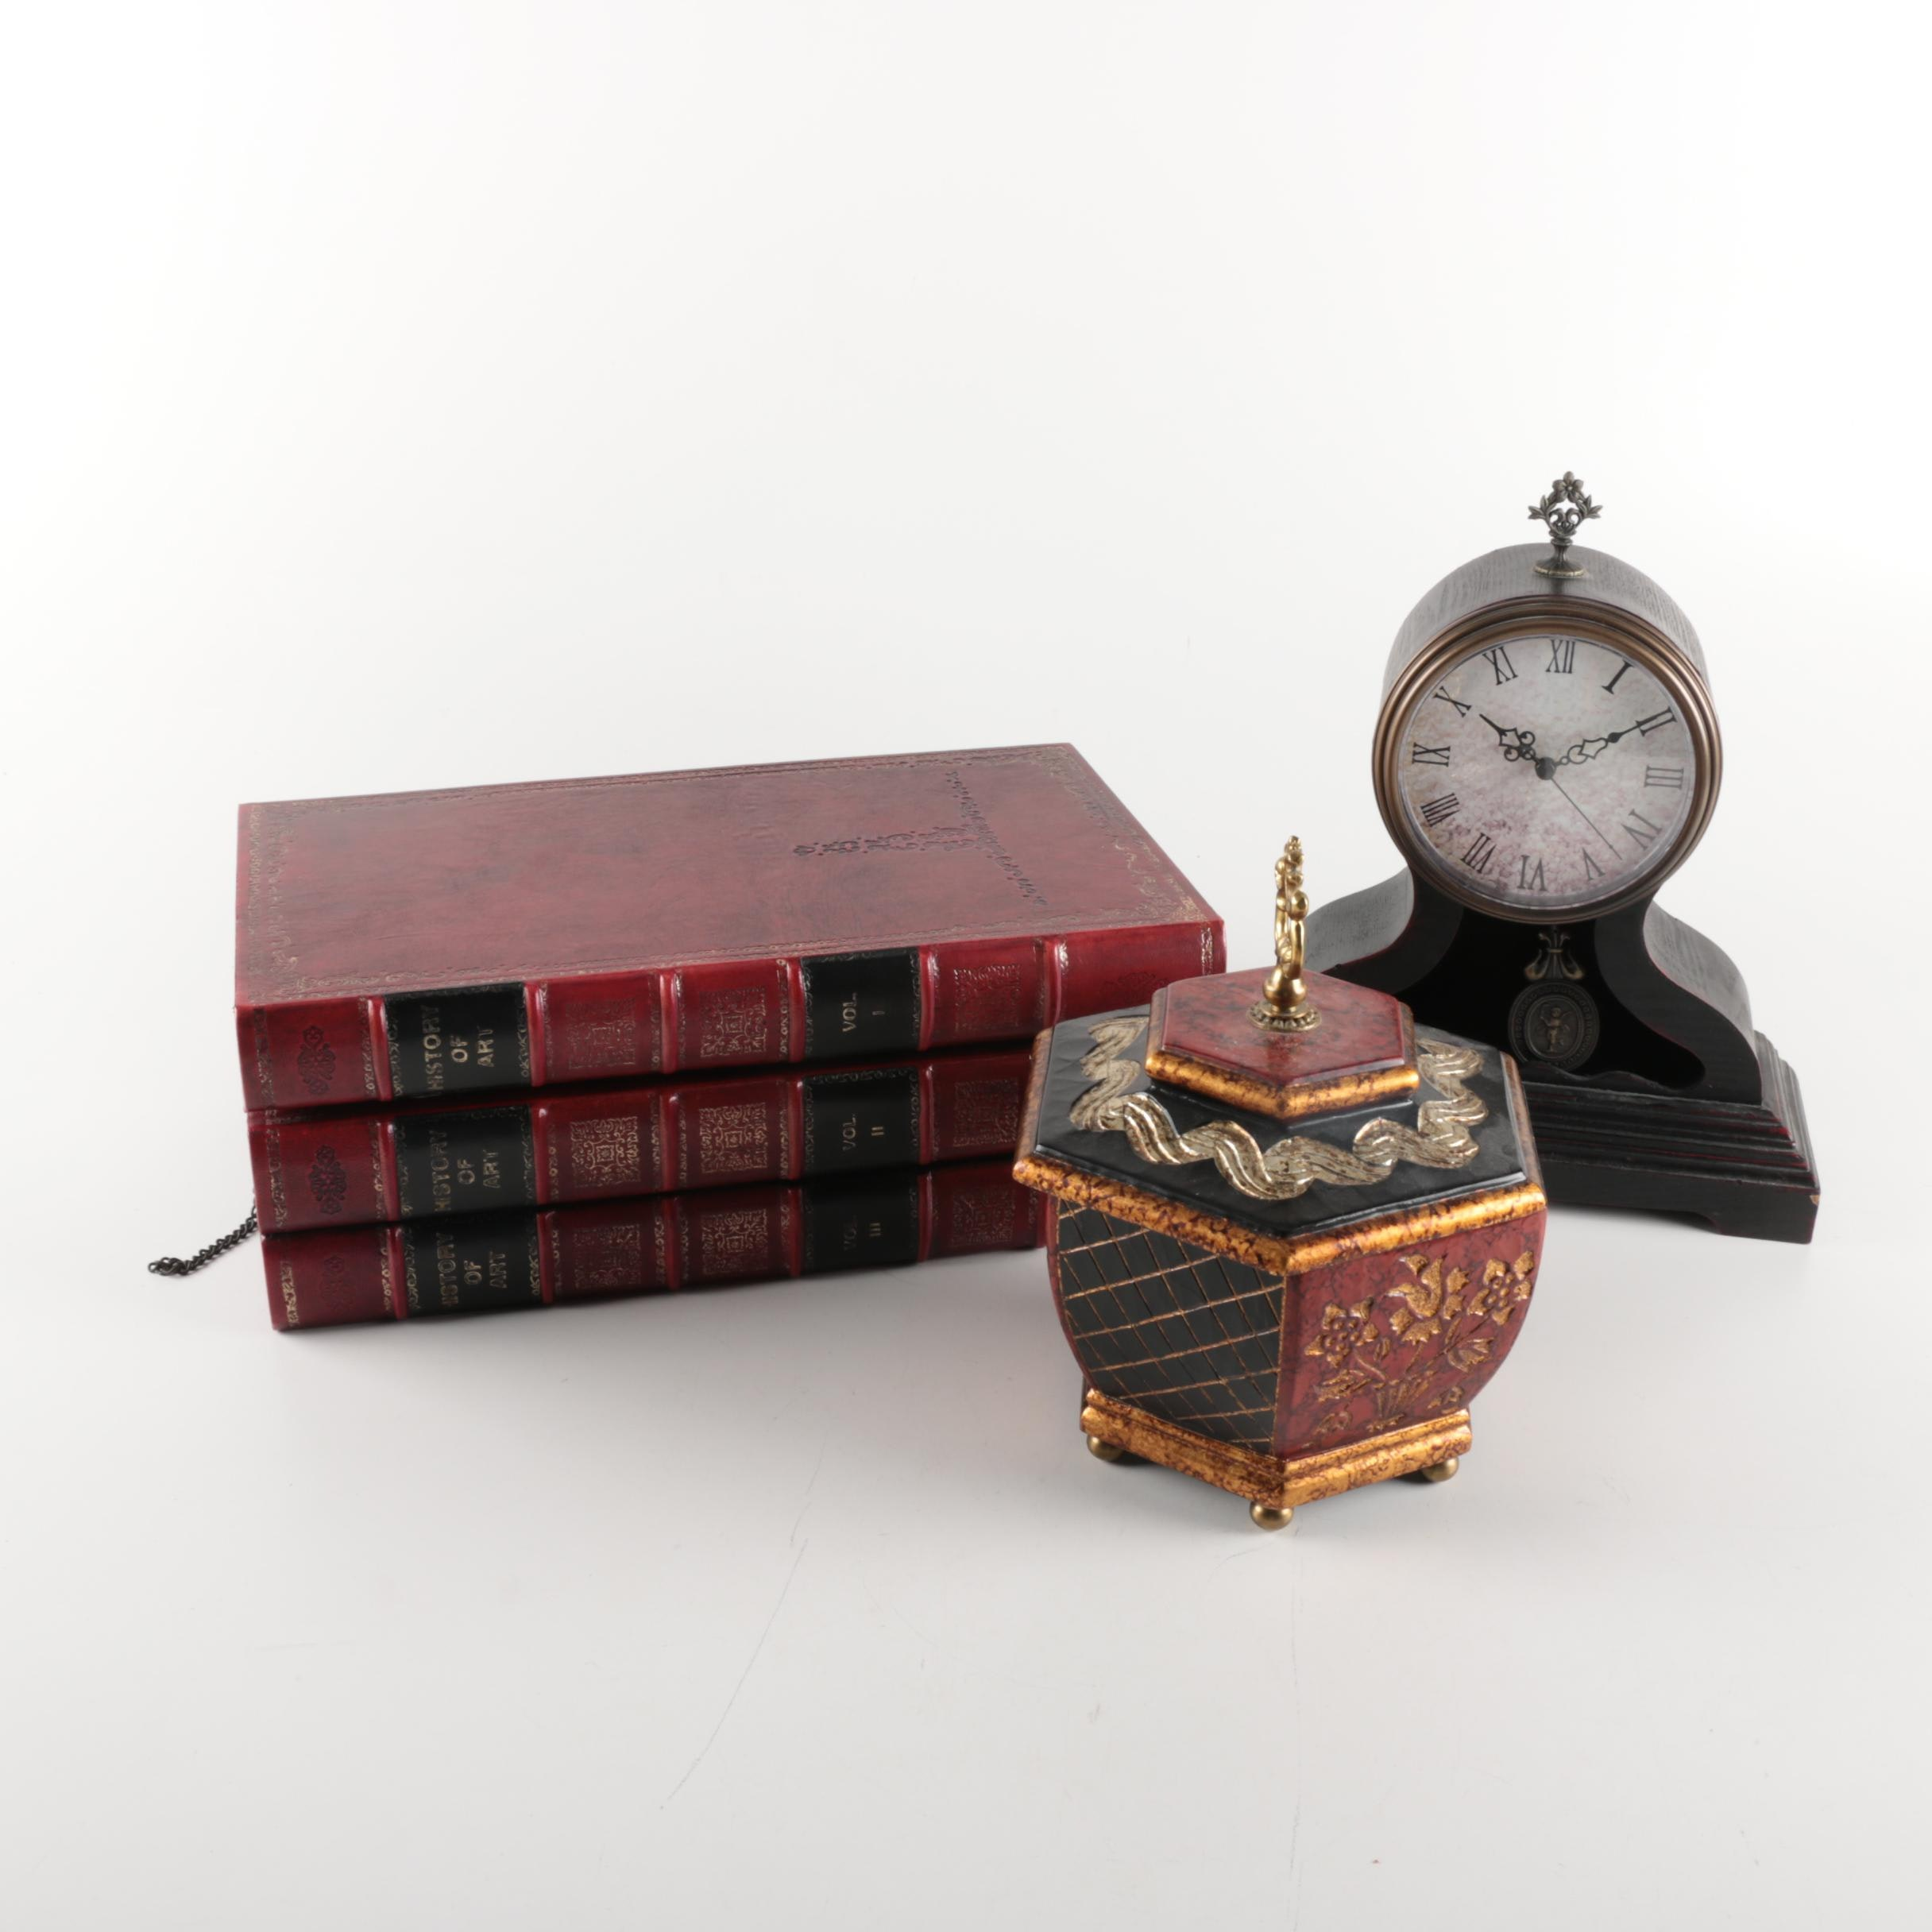 Decorative Boxes and Mantel Clock